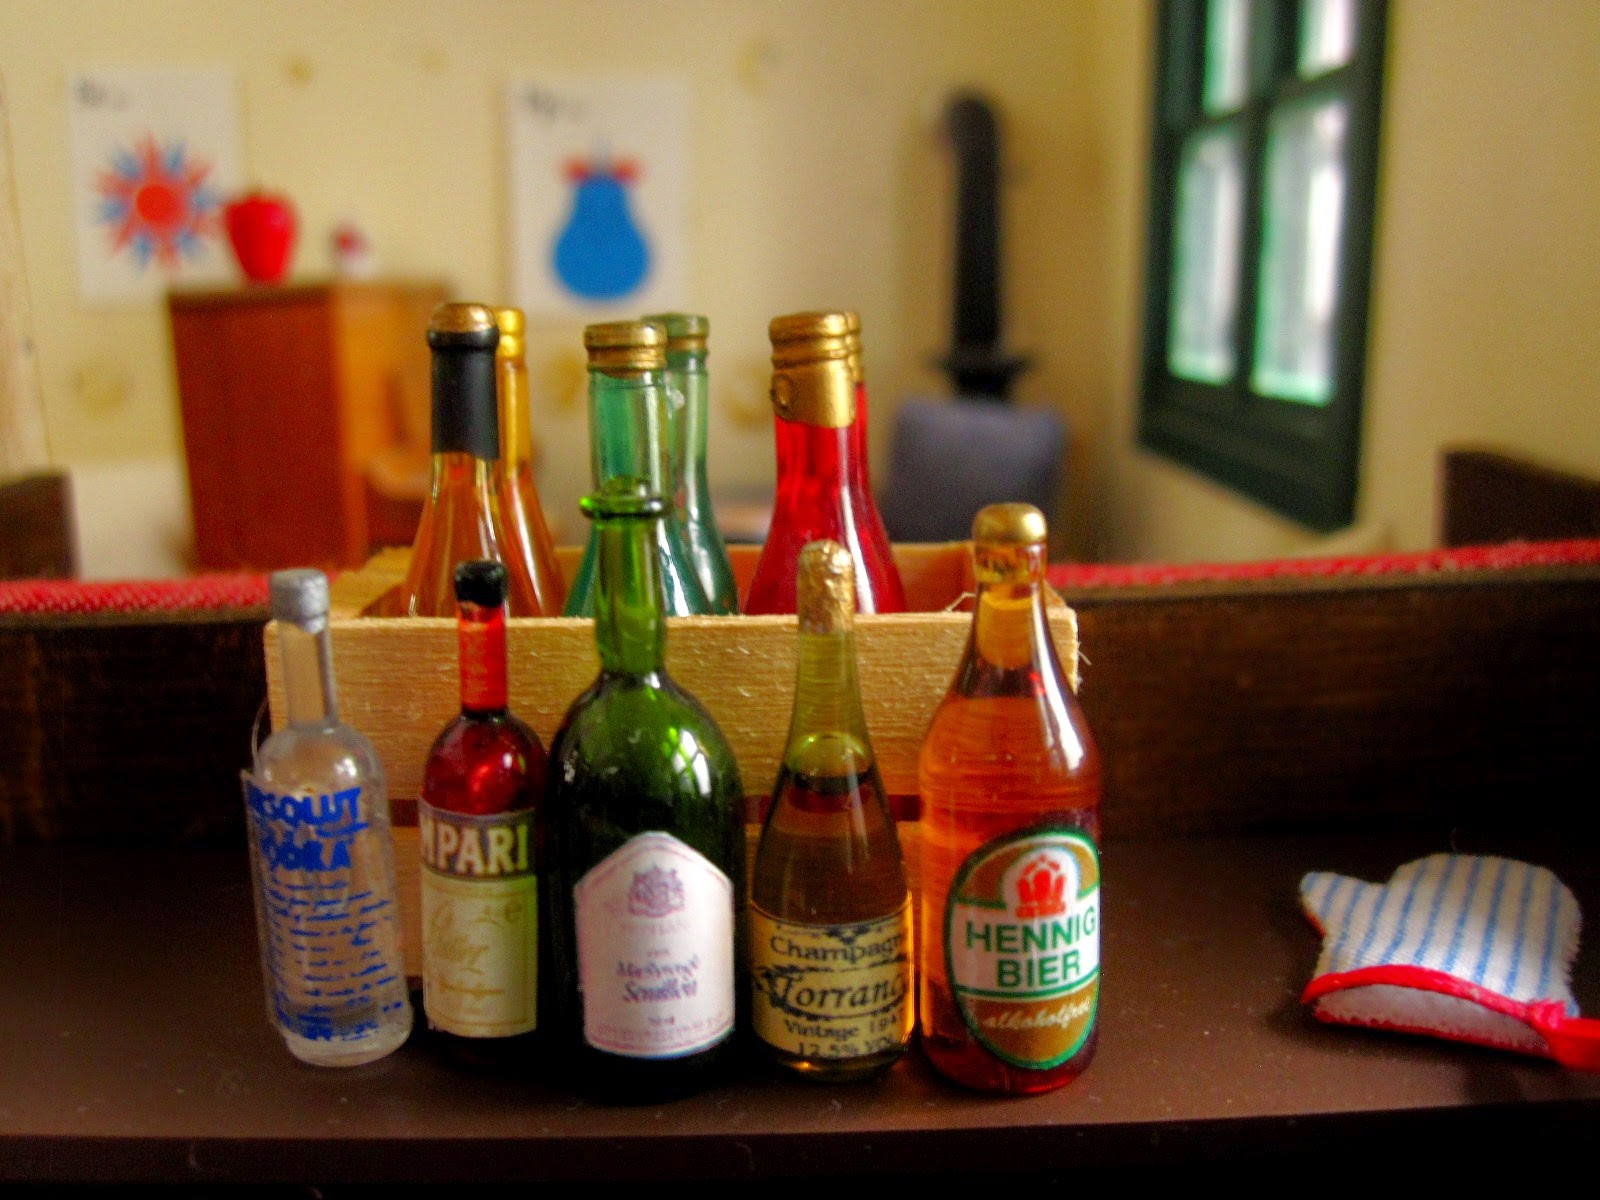 A selection of bottles of miniature alcohol.